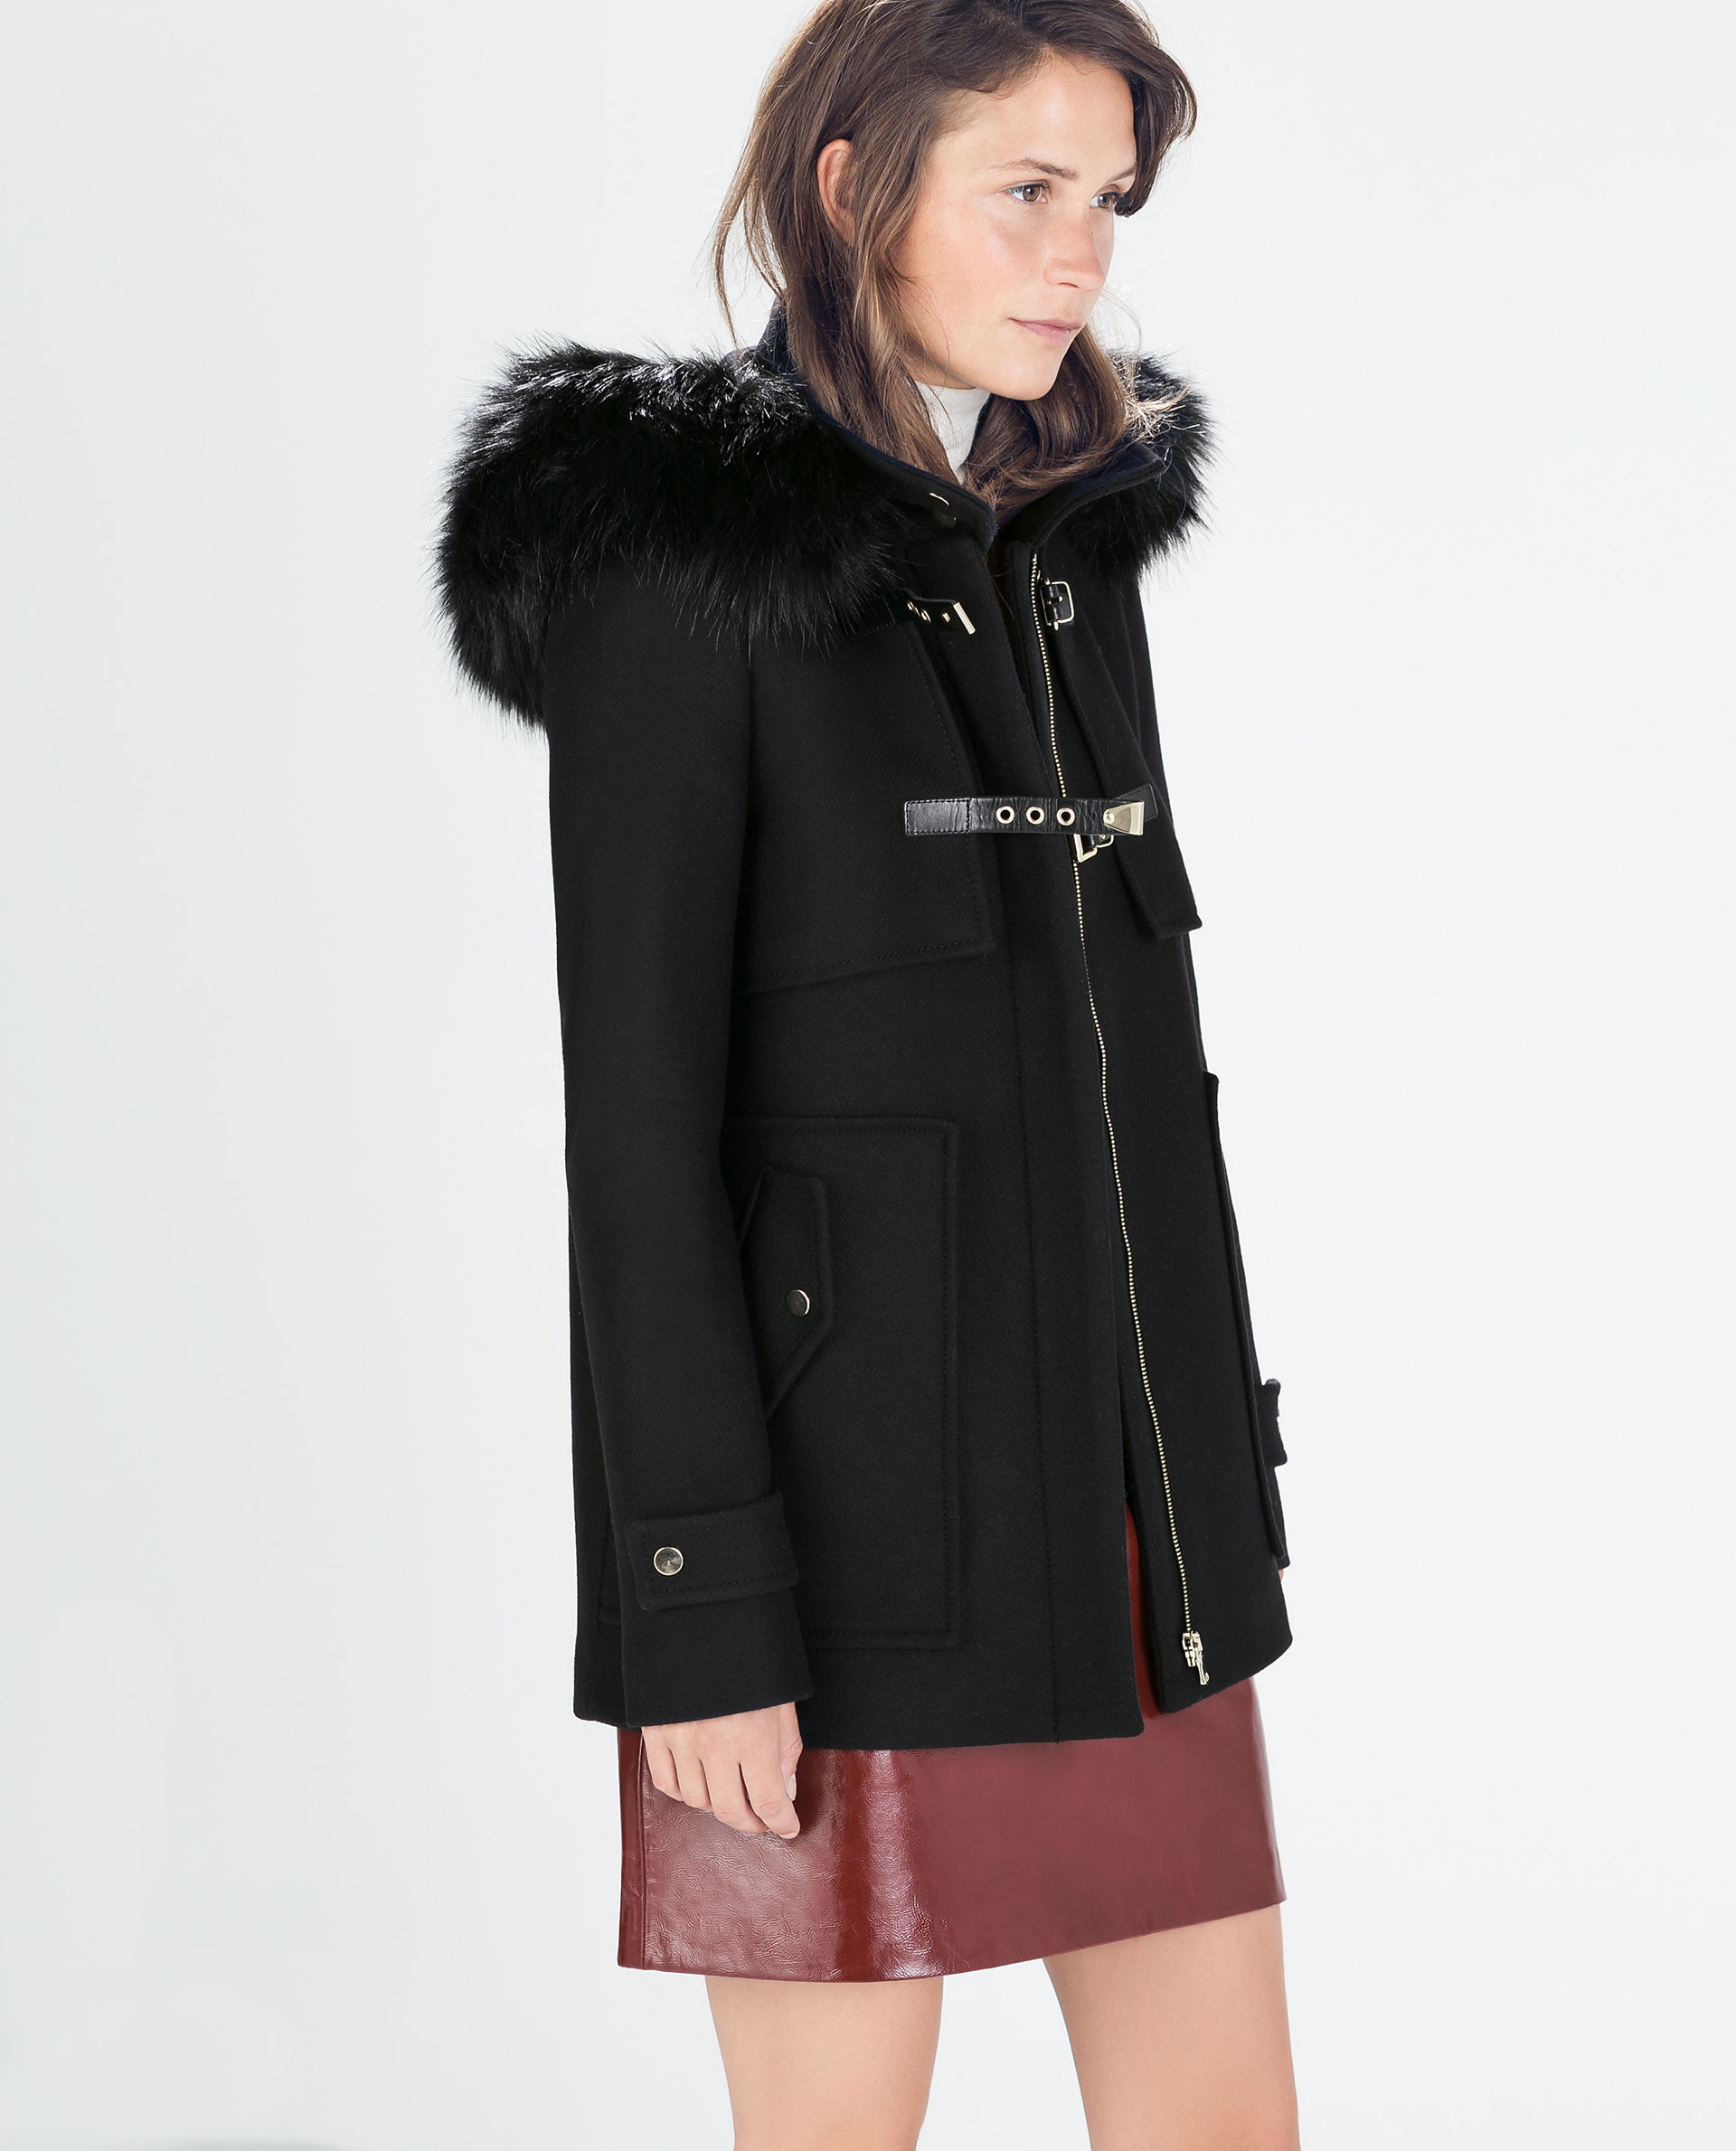 Black coat hood fur – Modern fashion jacket photo blog